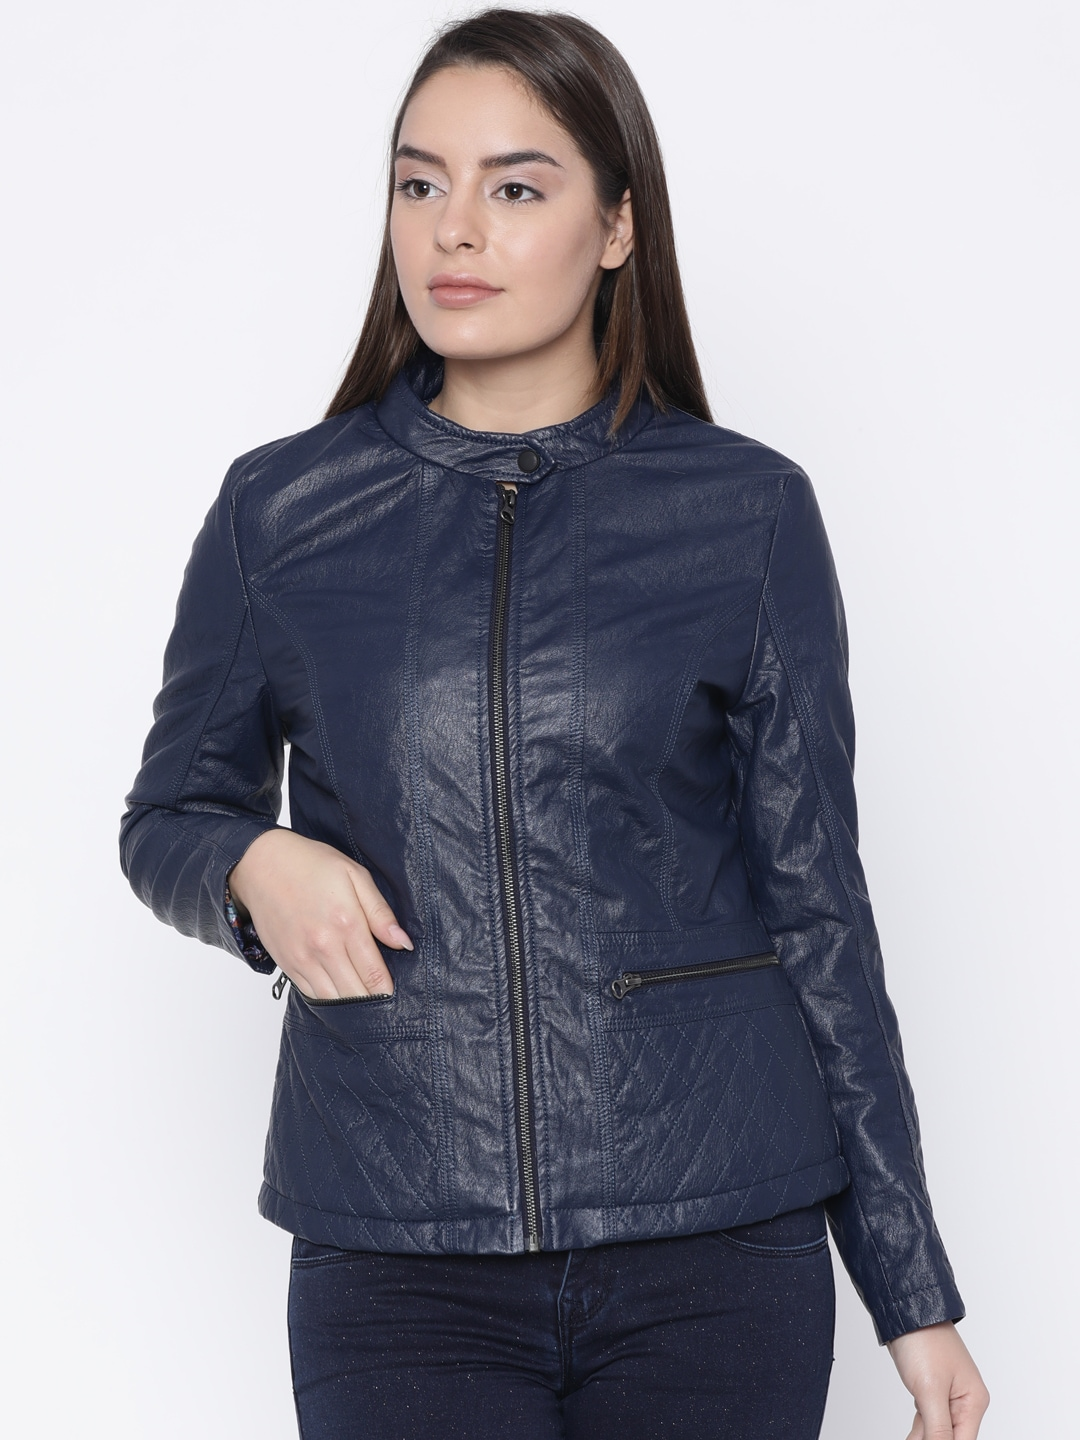 6b3966e5f8d Buy Fort Collins Black Faux Leather Jacket - Jackets for Women ...